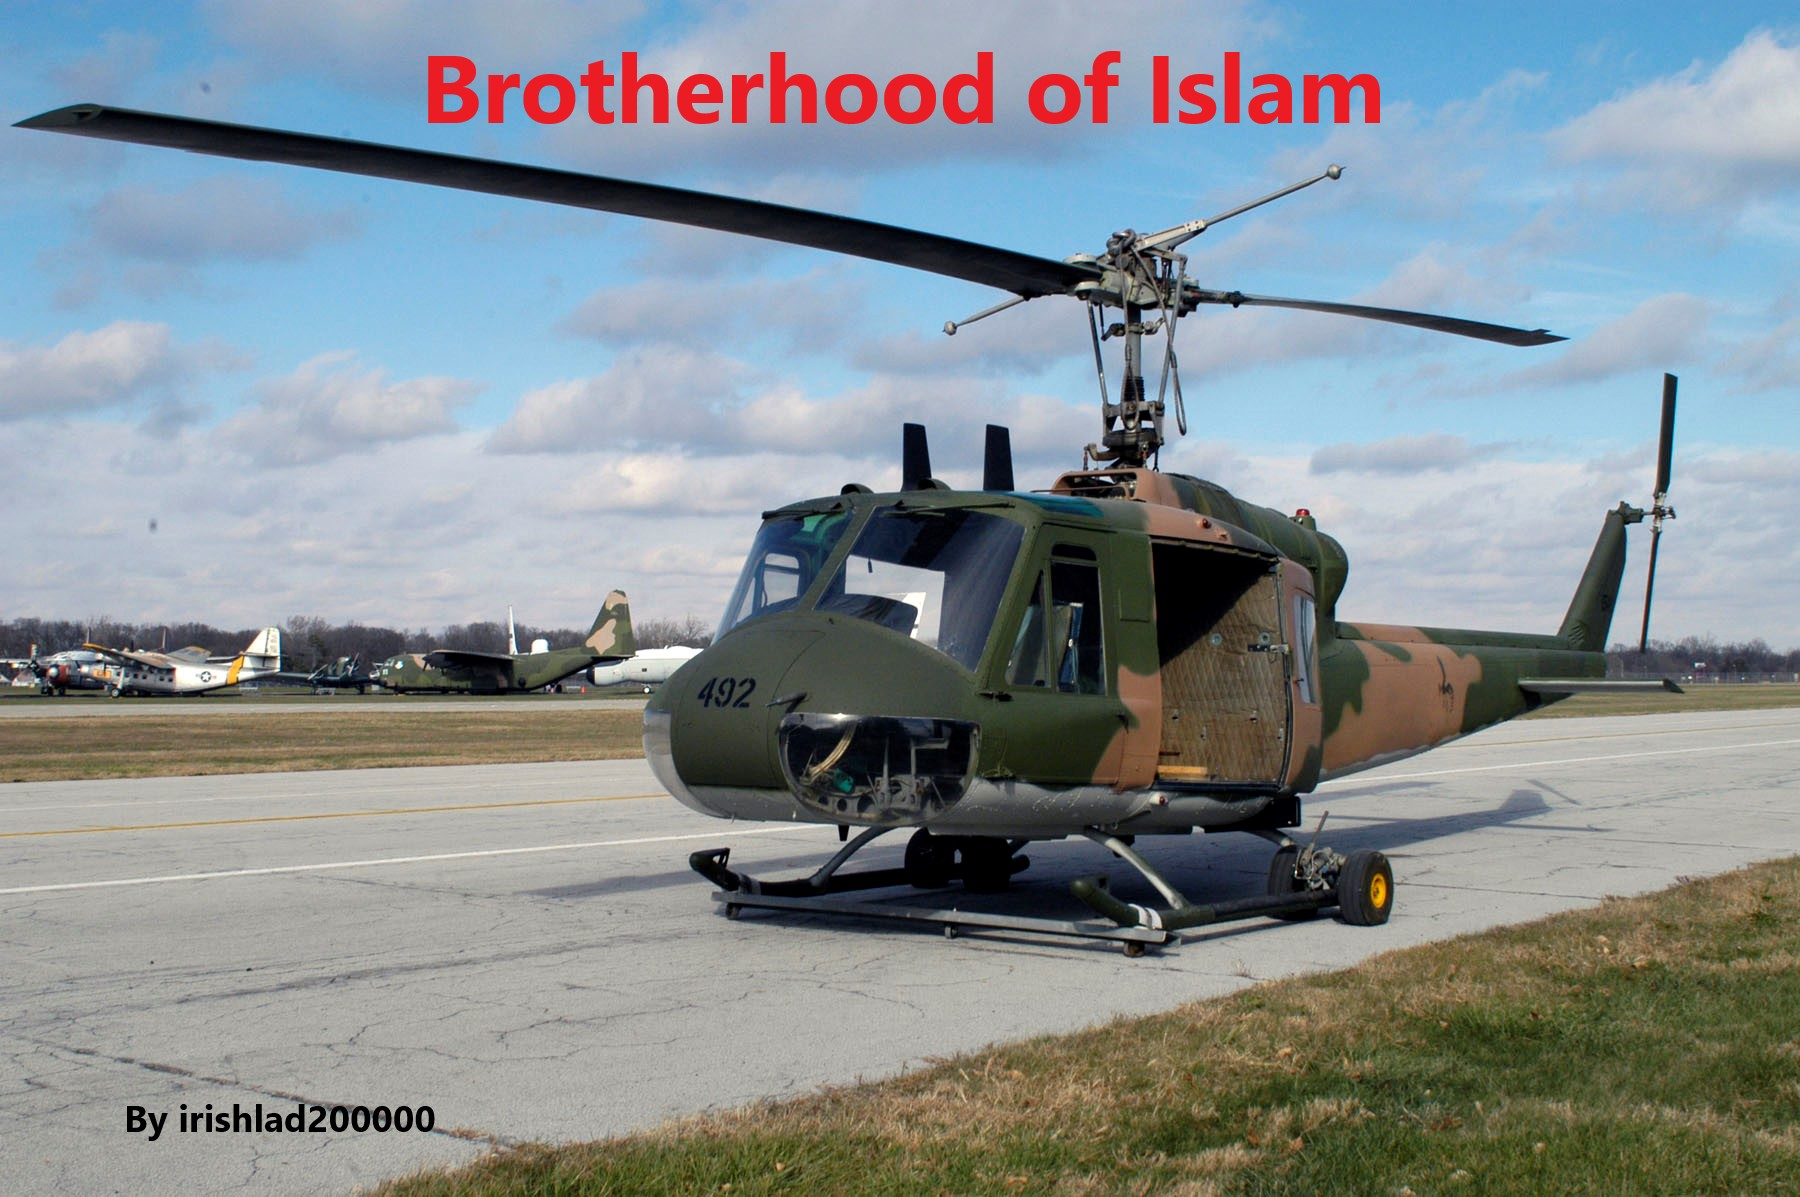 Brotherhood of Islam